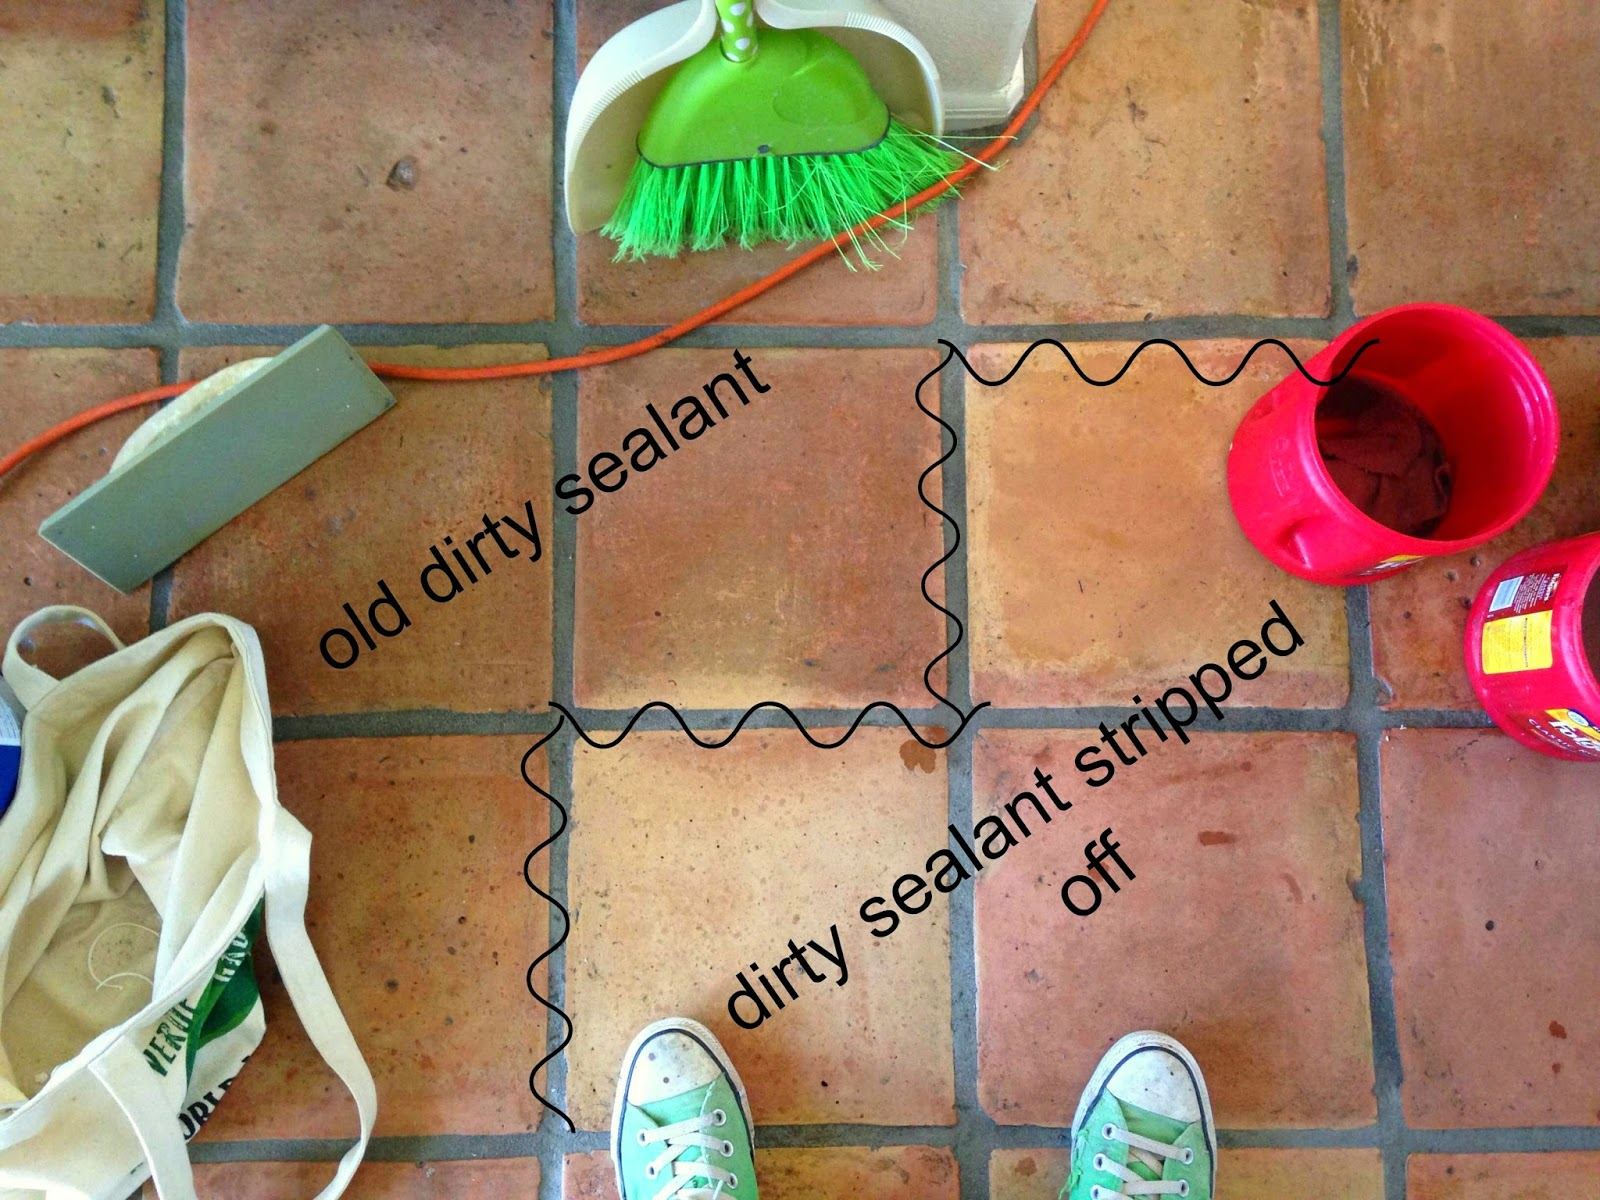 Dusty coyote stripping and sealing a saltillo tile floor hhow to strip saltillo tile floors strip saltillo tile strip terracotta tile floor dailygadgetfo Gallery